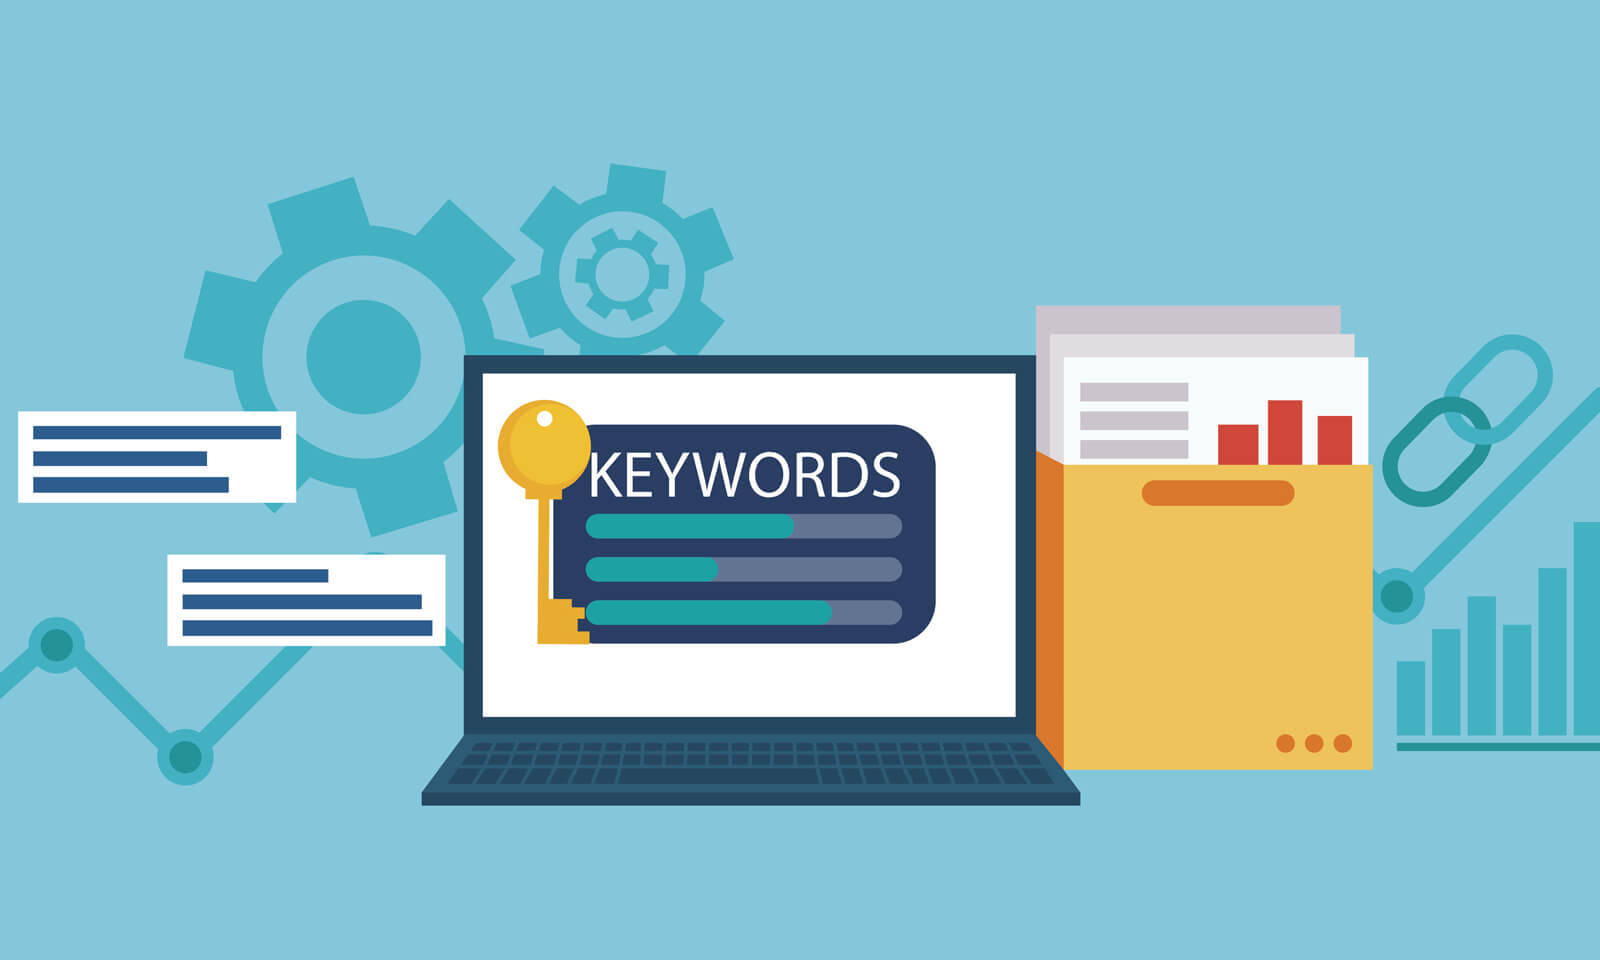 Webinar: SEO Keyword Selection & Hierarchy for Ecommerce